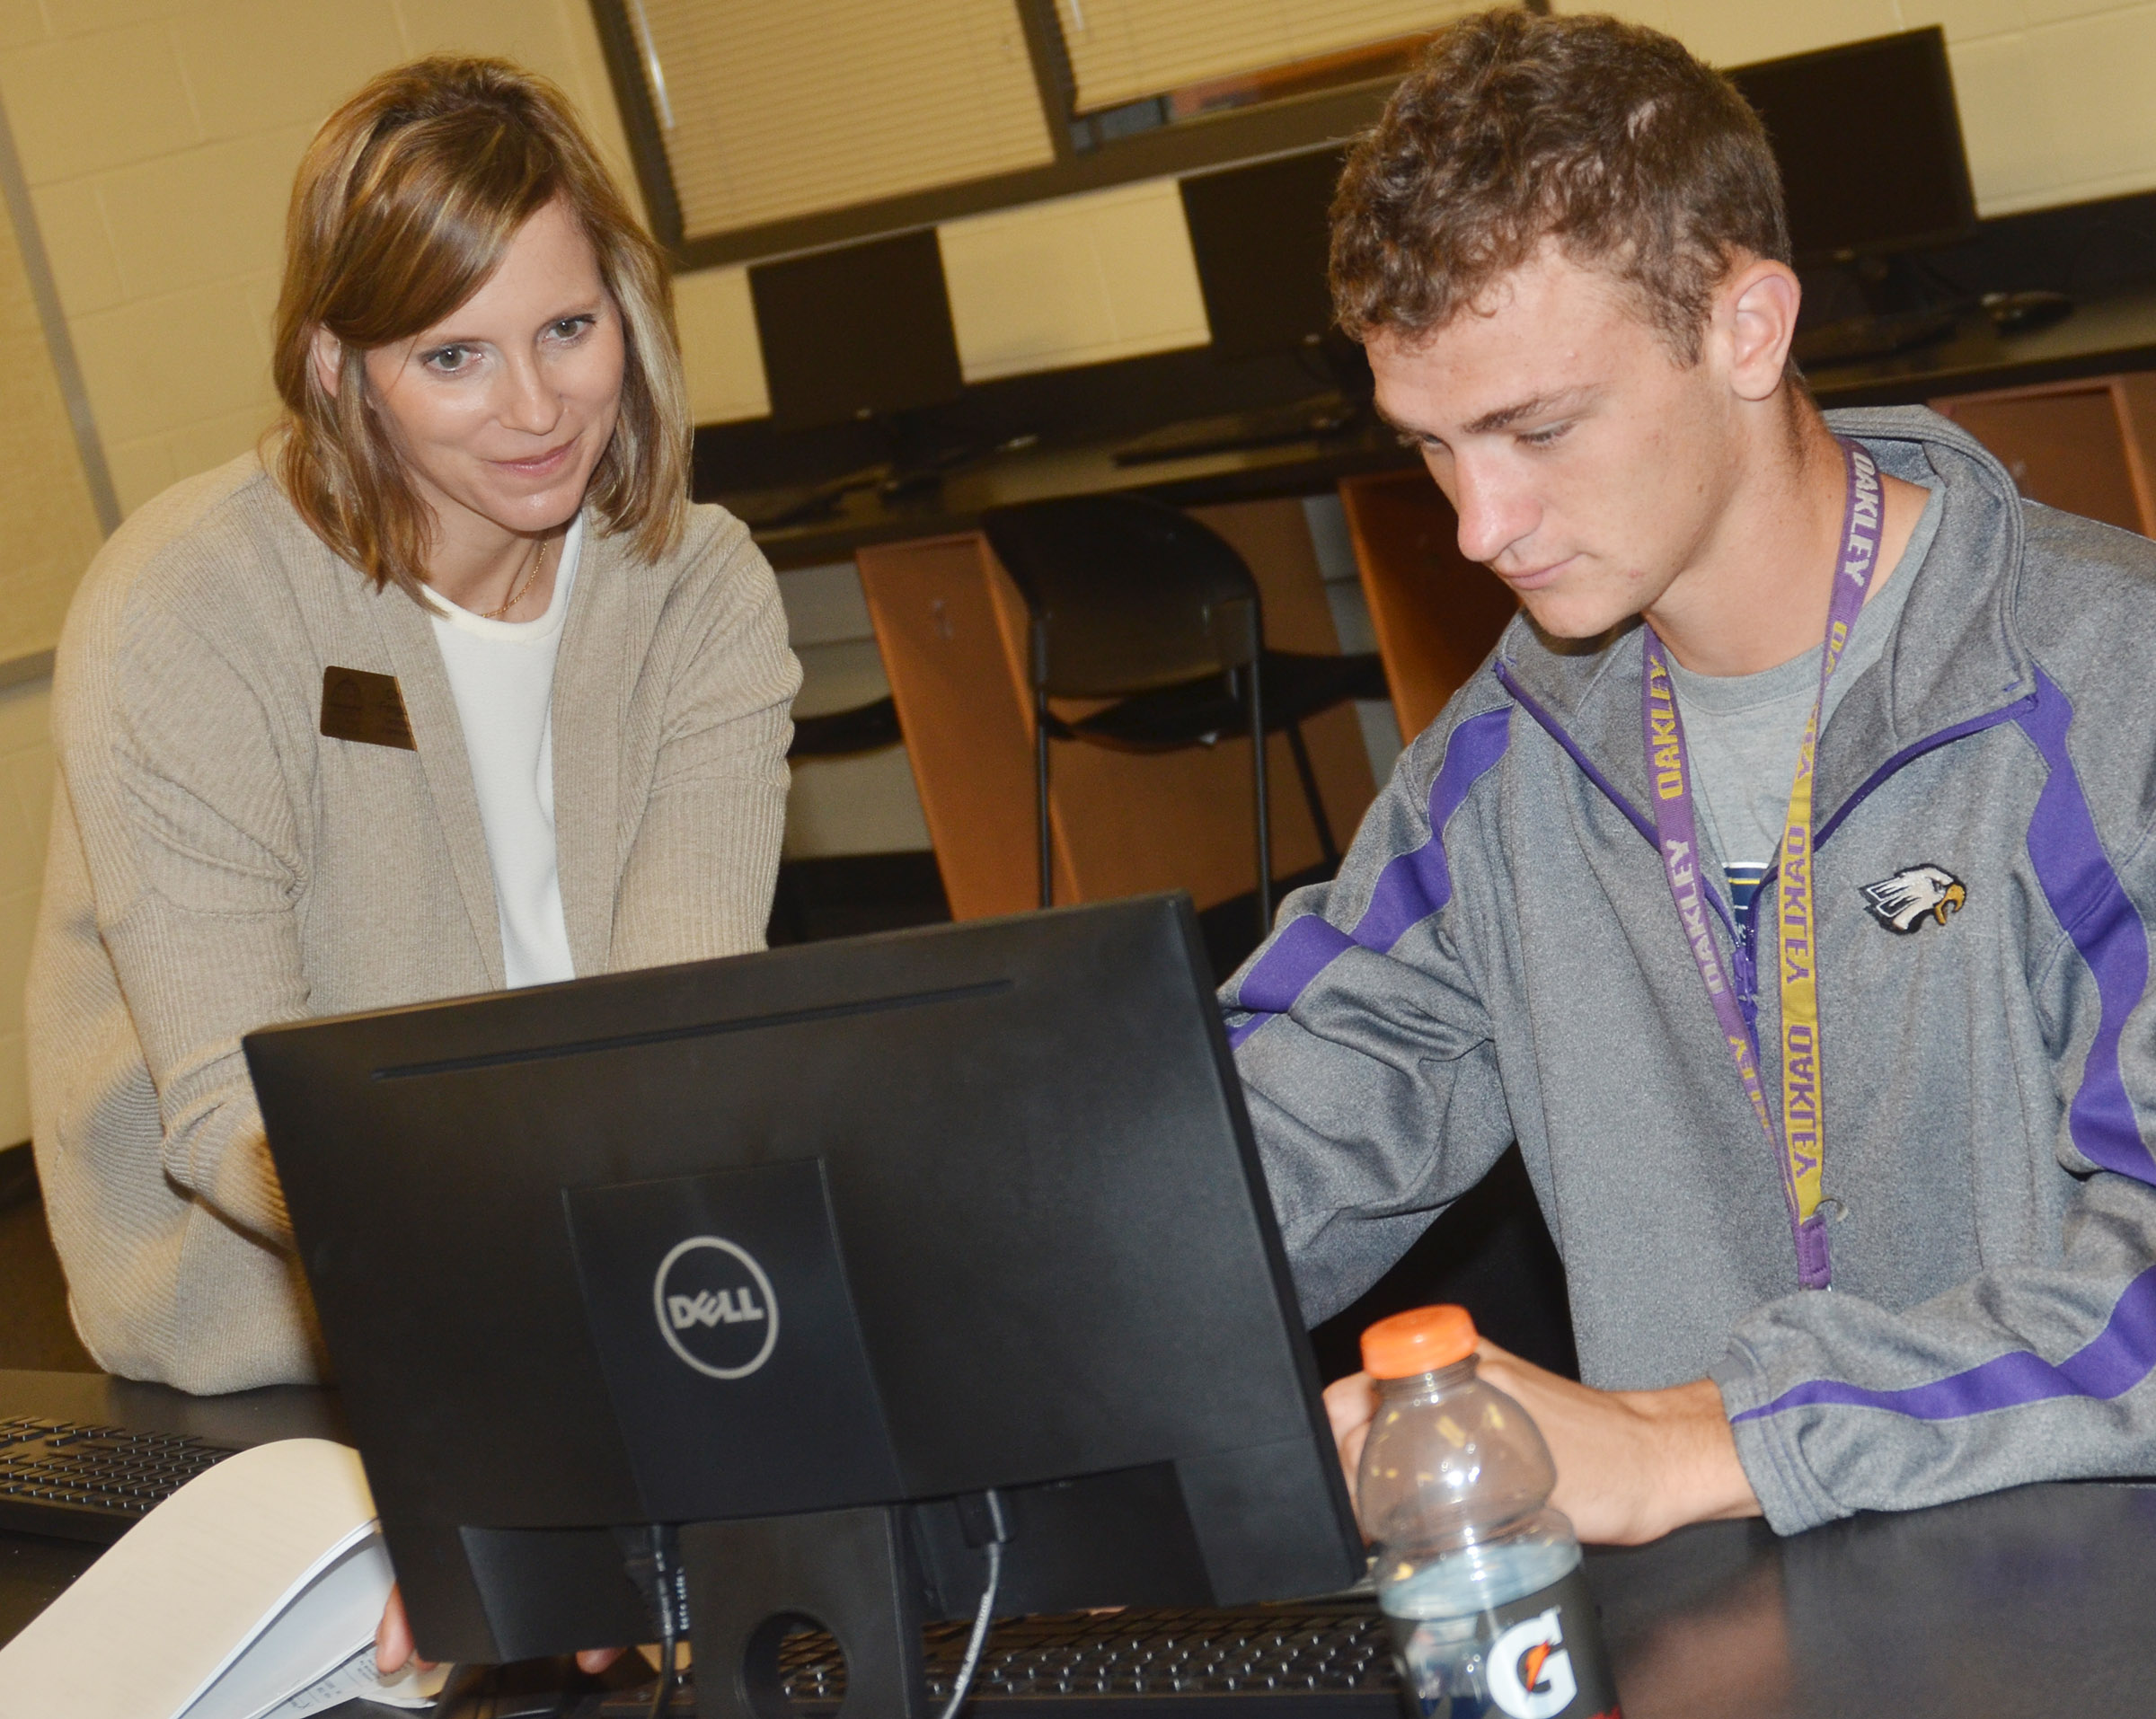 CHS senior Connor Wilson completes his FAFSA, with help from Charity Ferguson, director of admissions at Lindsey Wilson College.